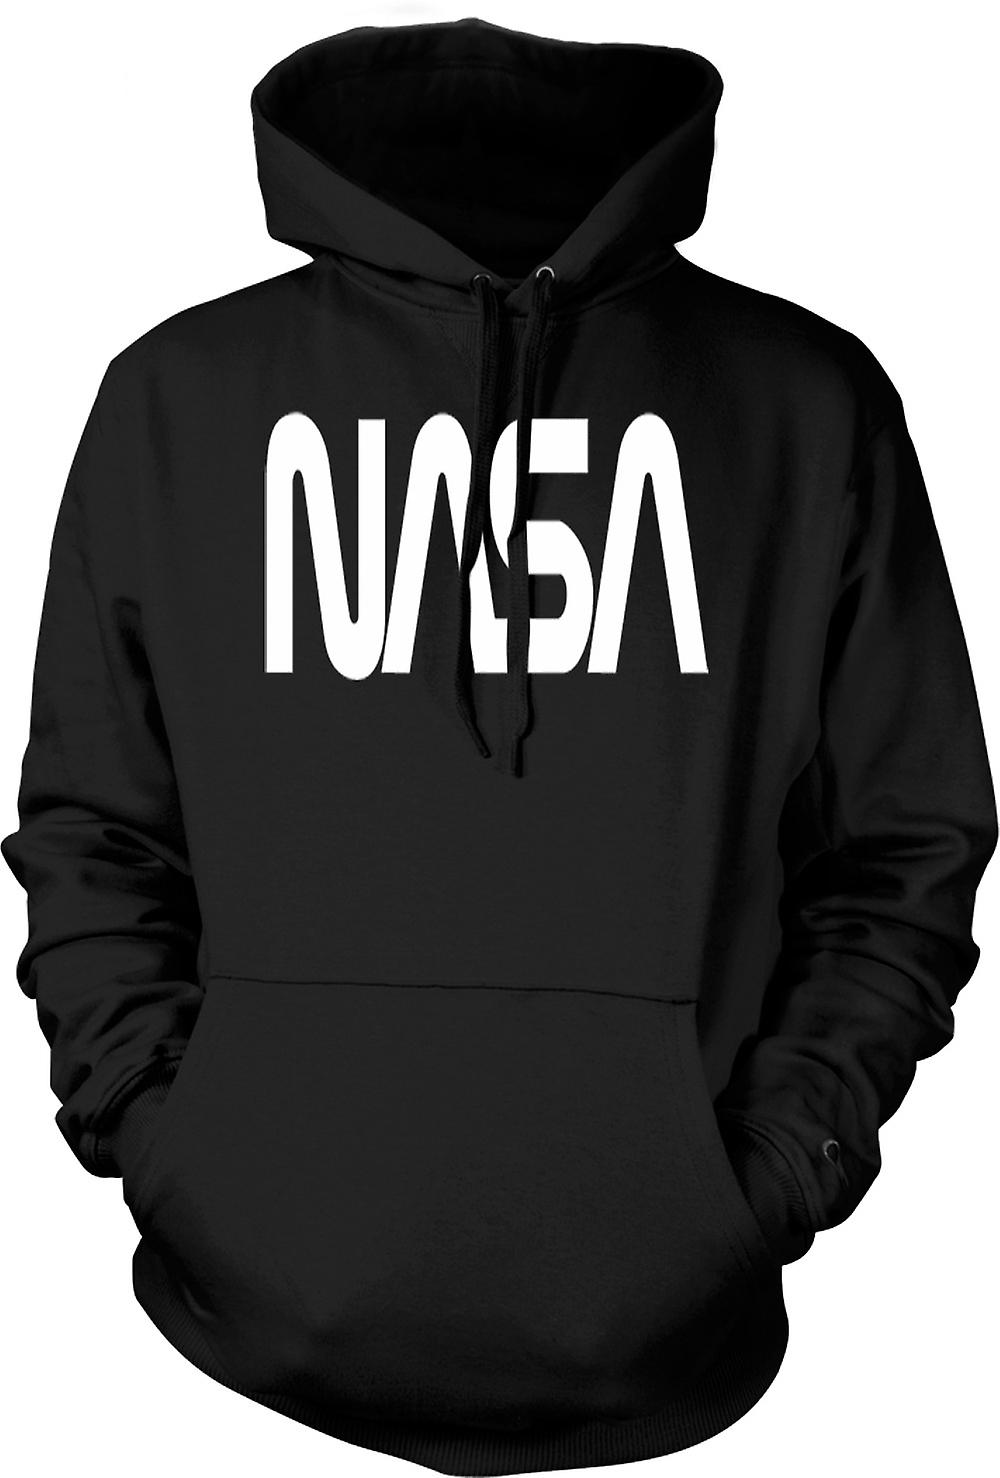 Mens Hoodie - NASA Space Program - Sci Fi